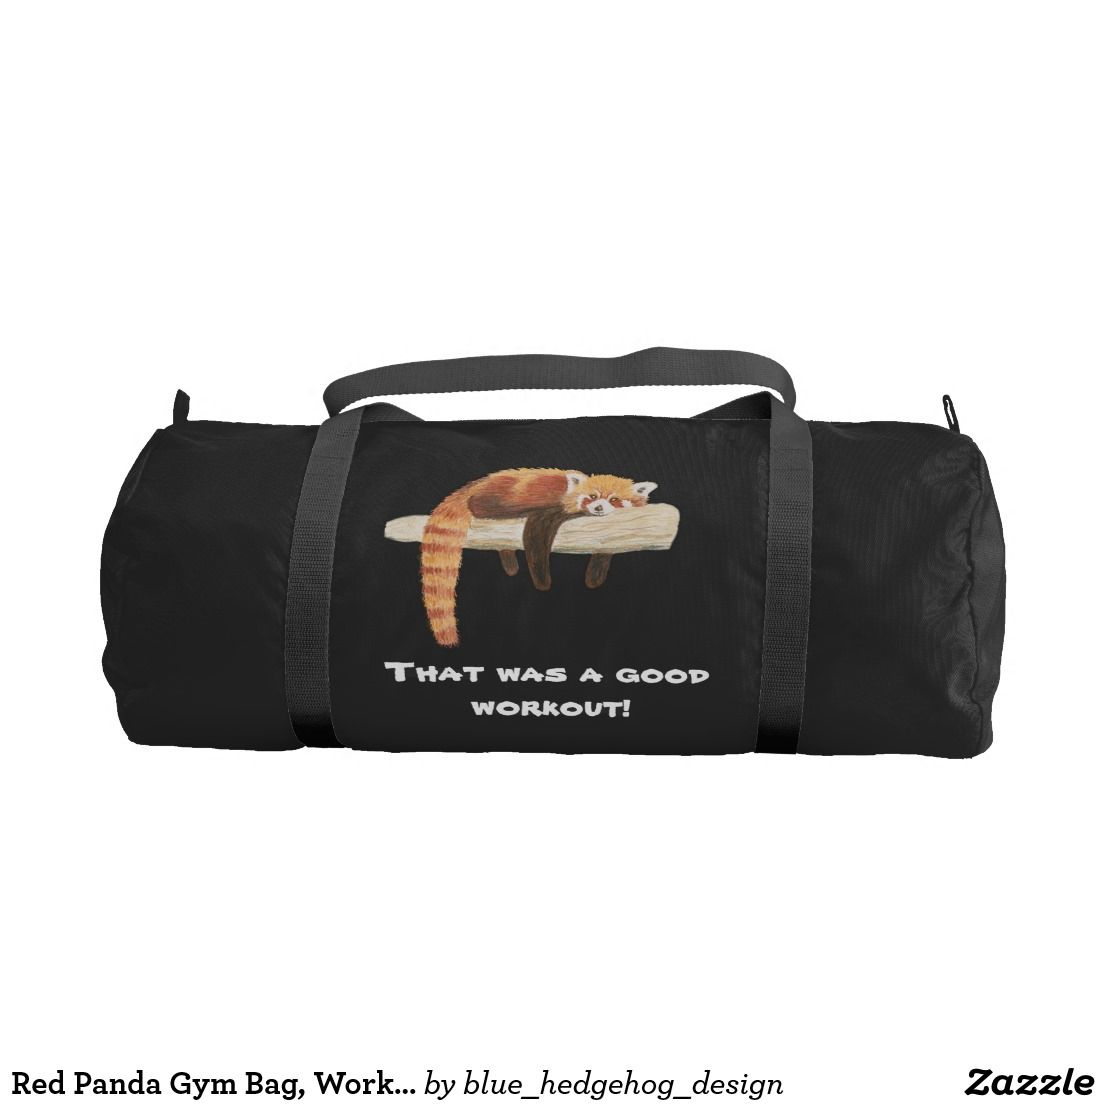 Red Panda Gym Bag cf7b59528a696